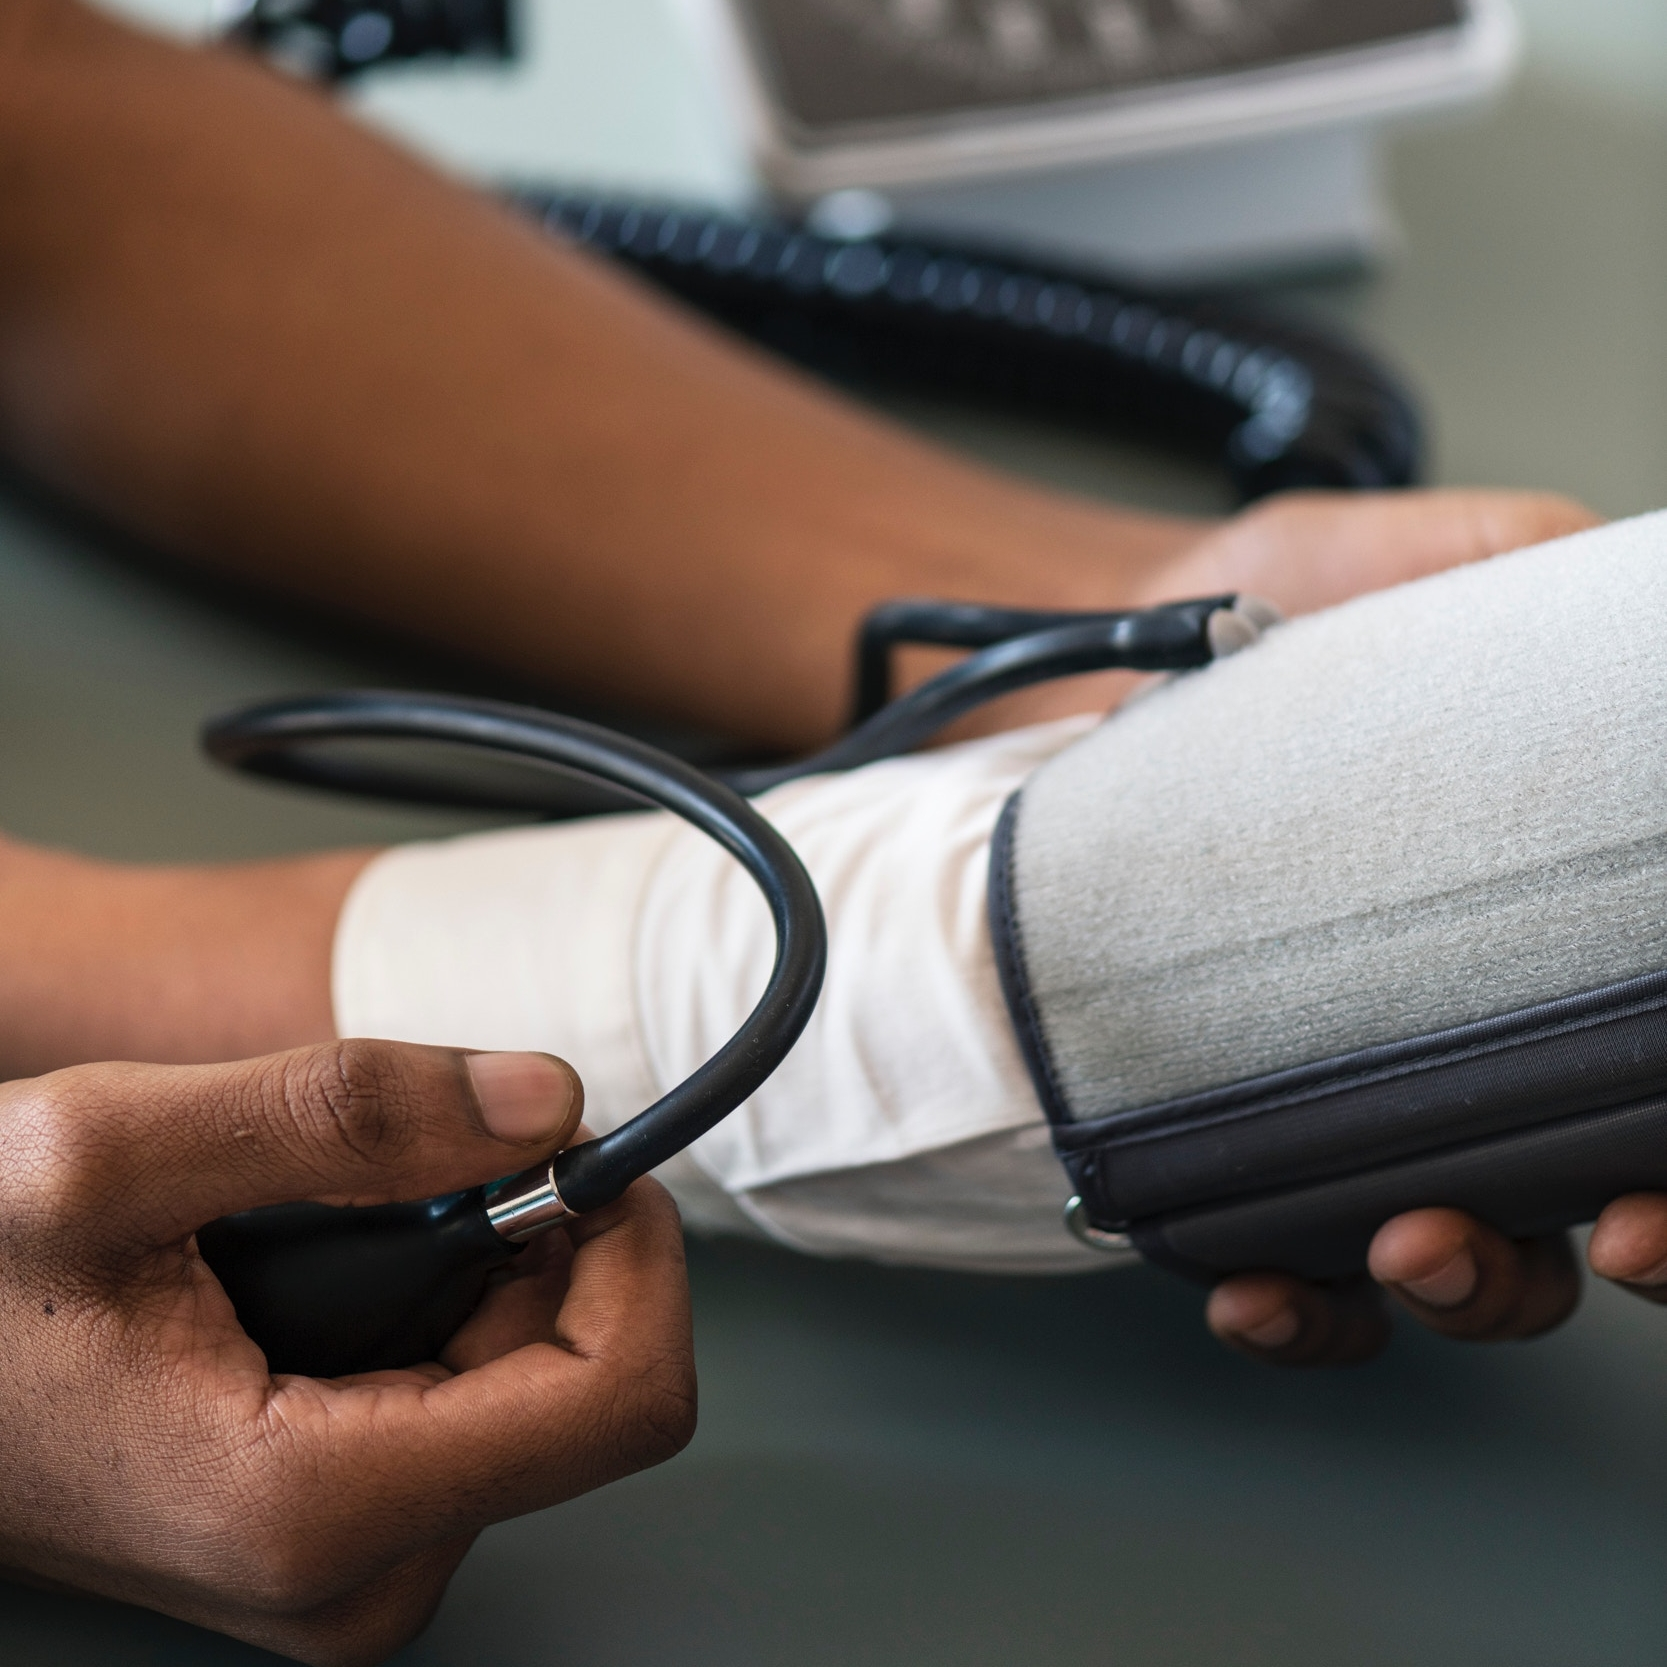 Affordable Health Care - Nobody should have to choose between their health or making ends meet.